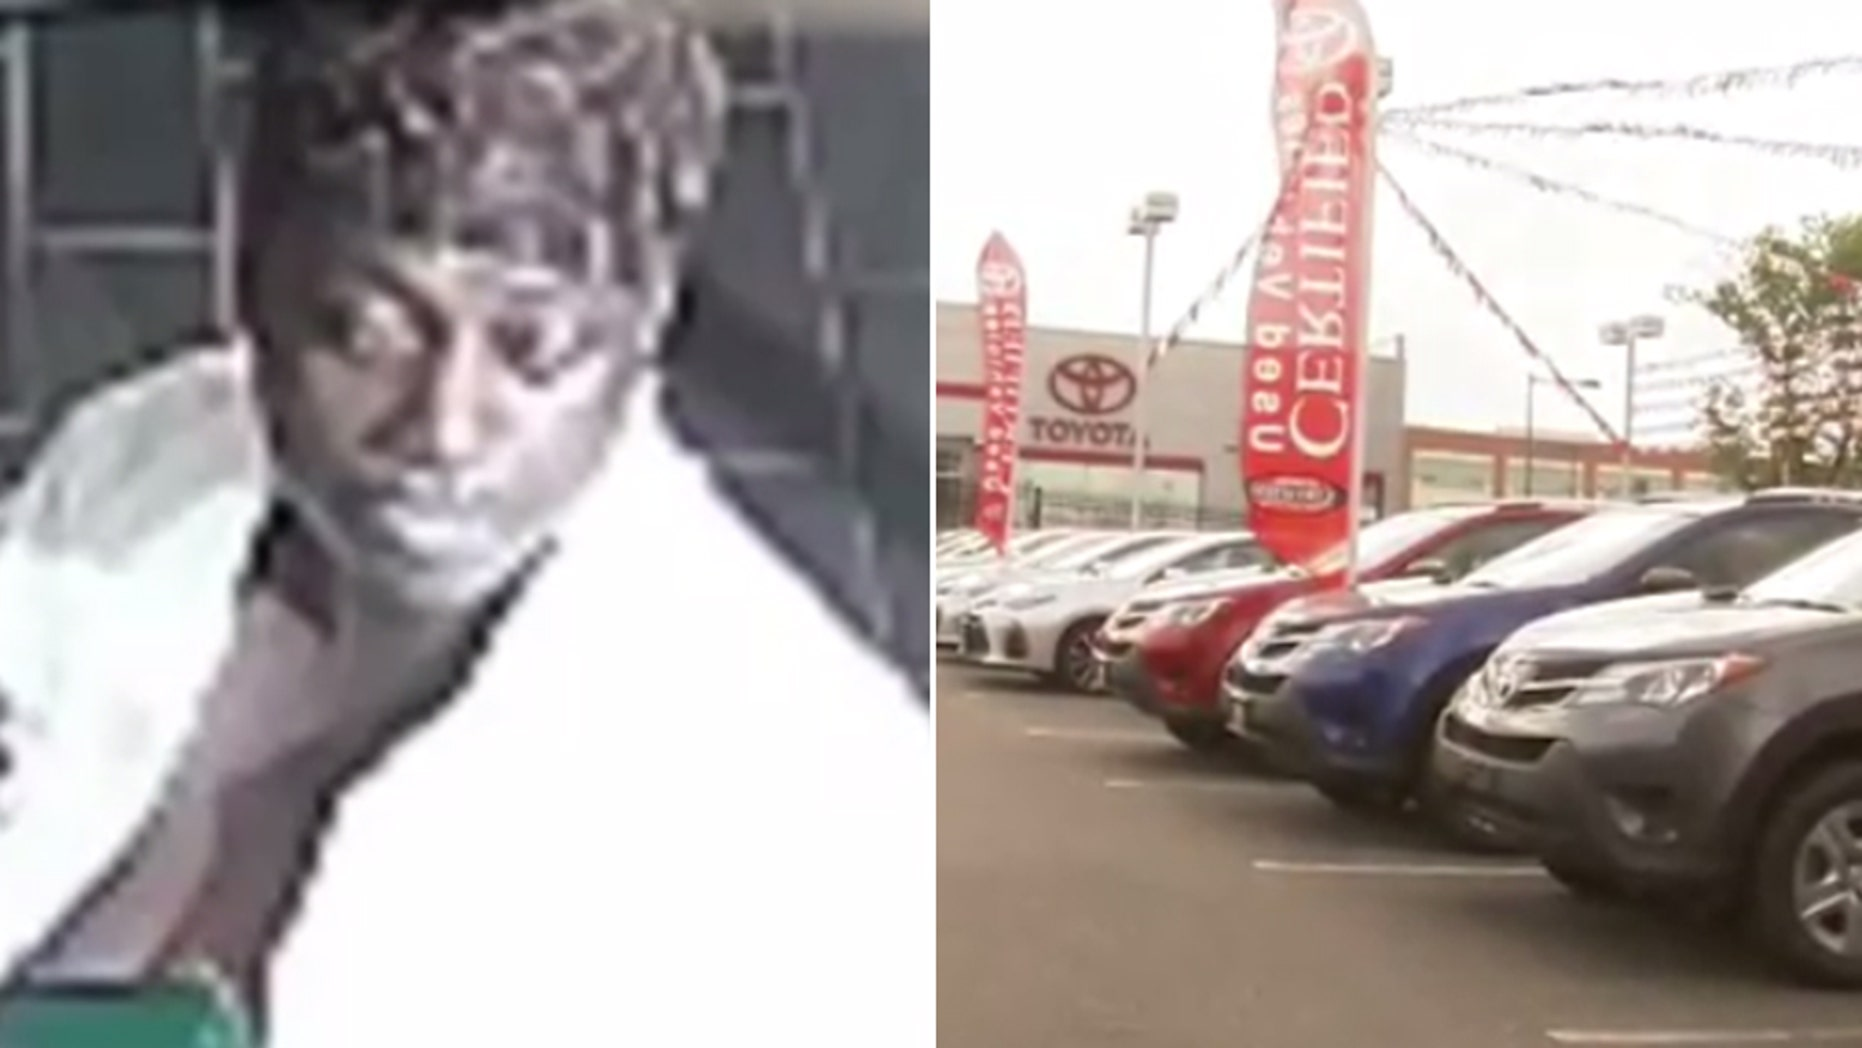 Philadelphia Police Are Looking For This Woman Whom They Say Stole A Car Off